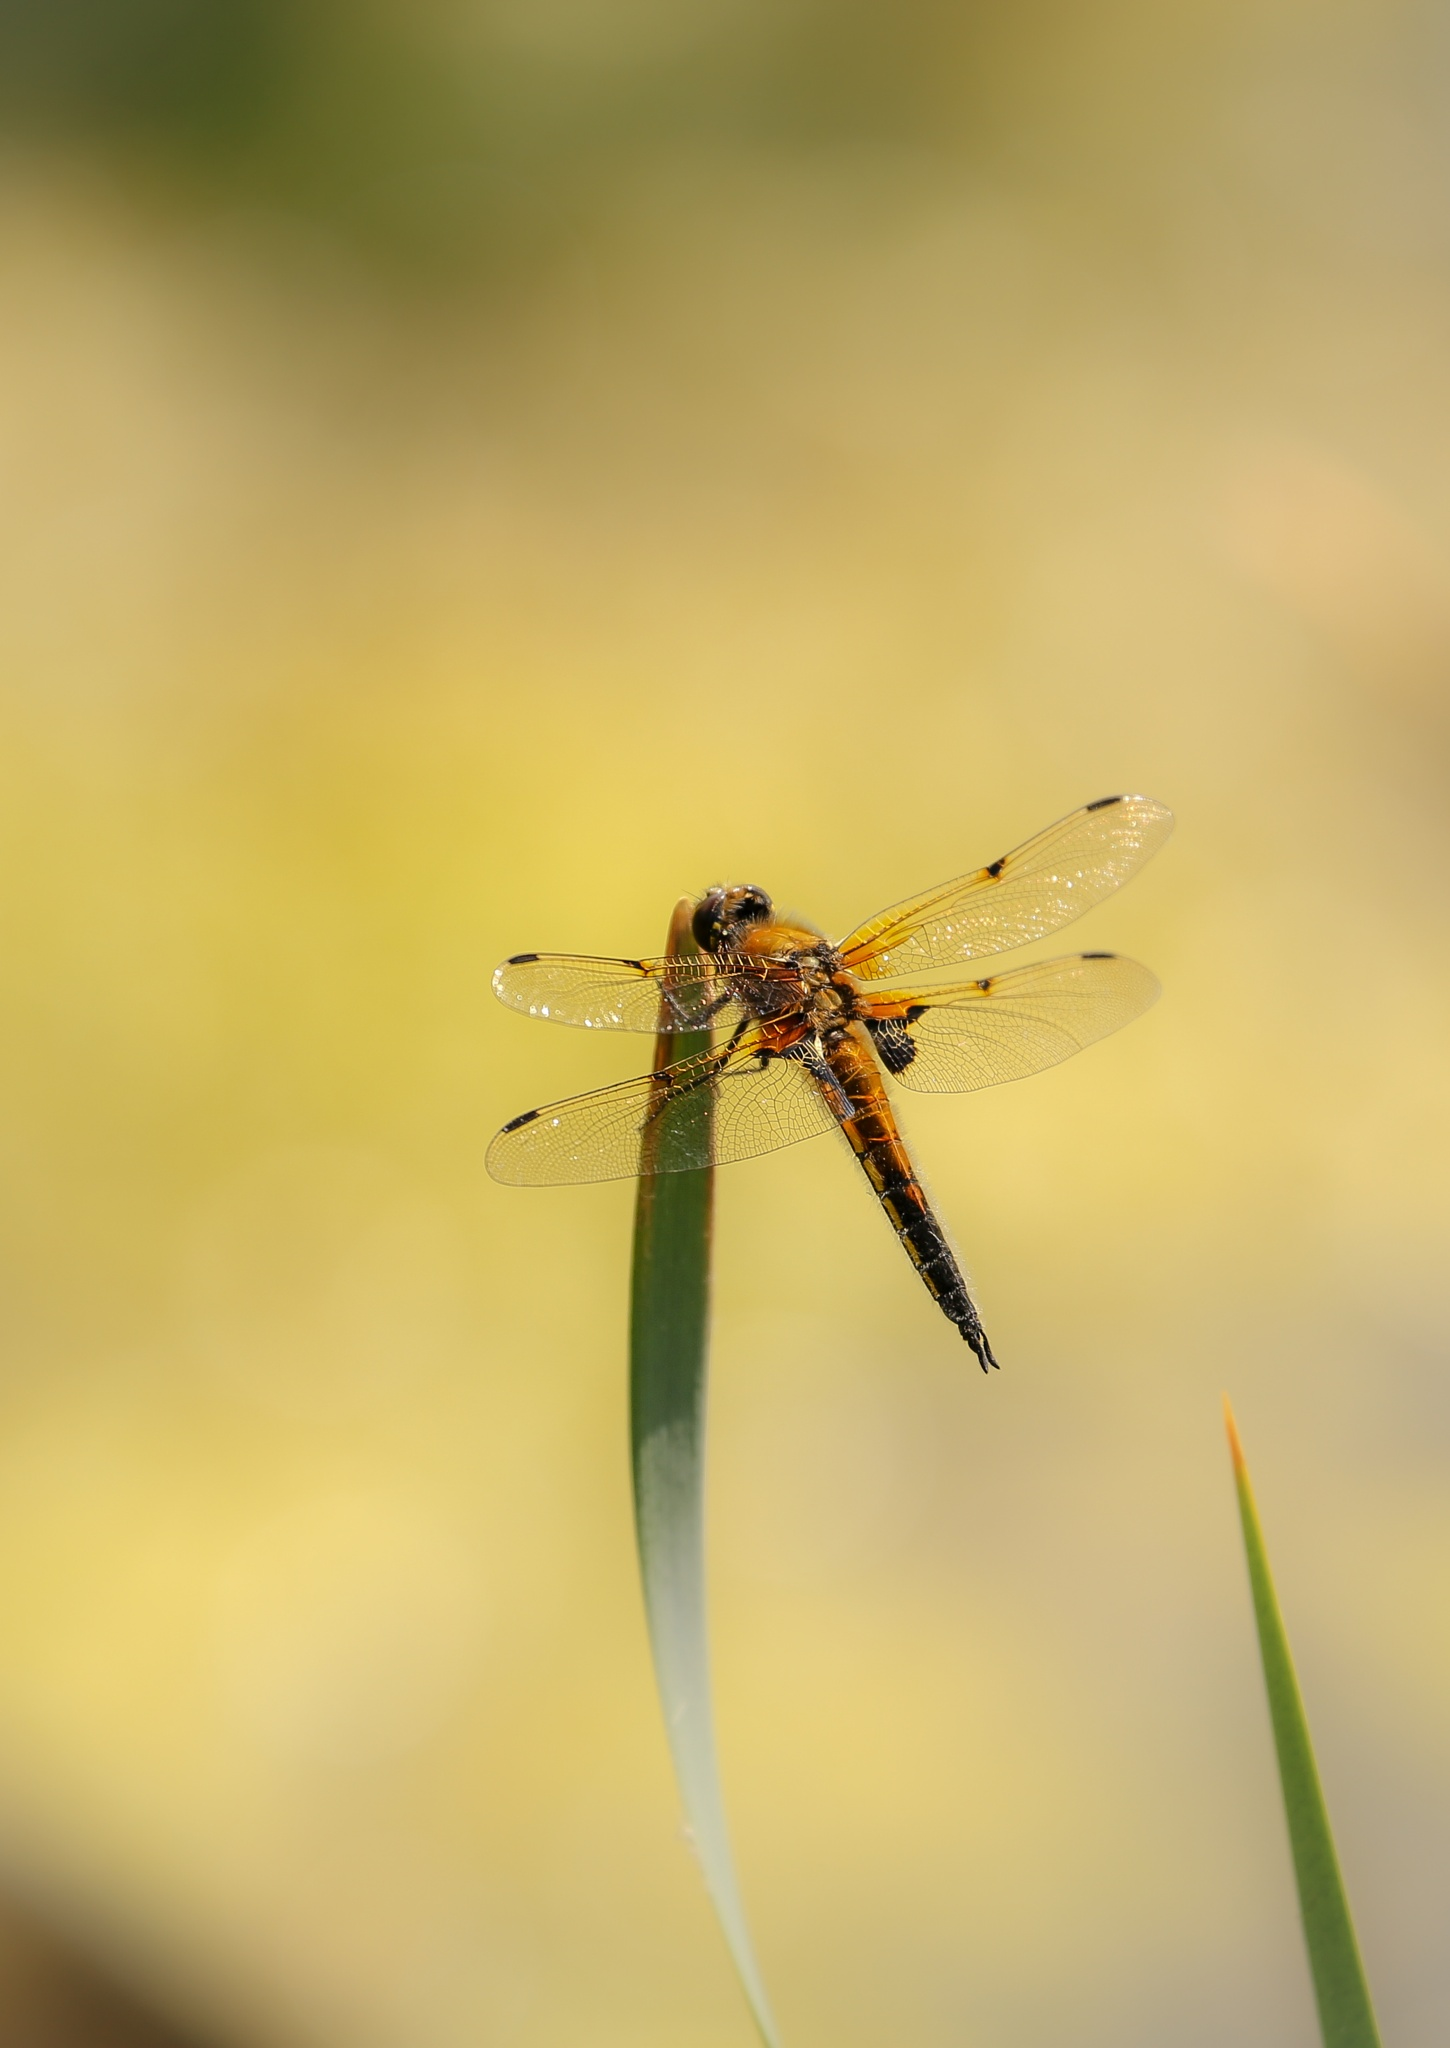 Four-Spotted Chaser by Sarah Walters